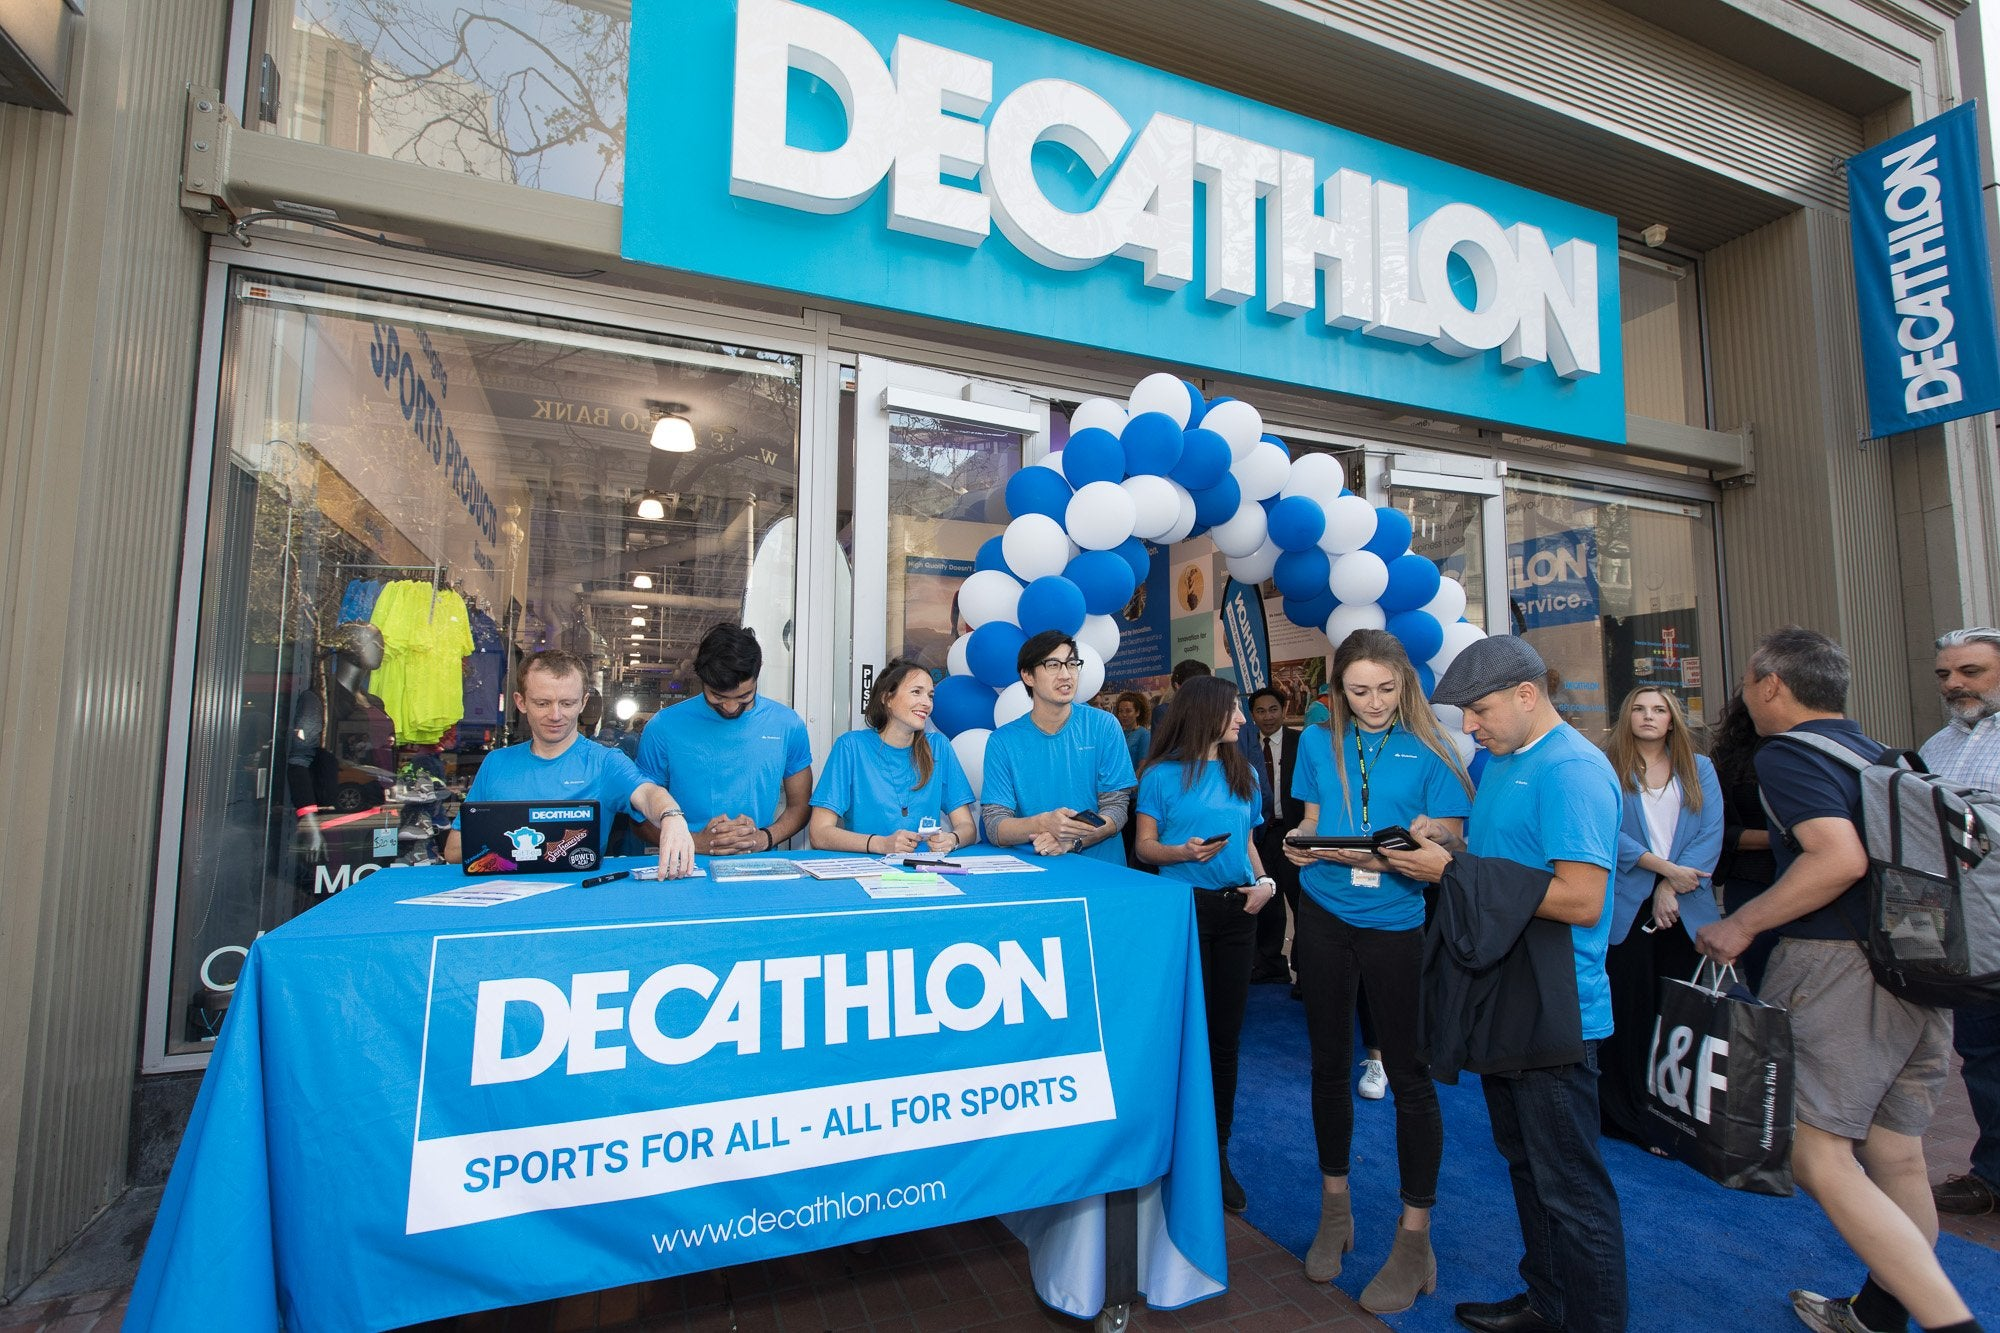 World's Largest Sporting Goods Retailer, Decathlon, Launches First US Lab Store in San Francisco